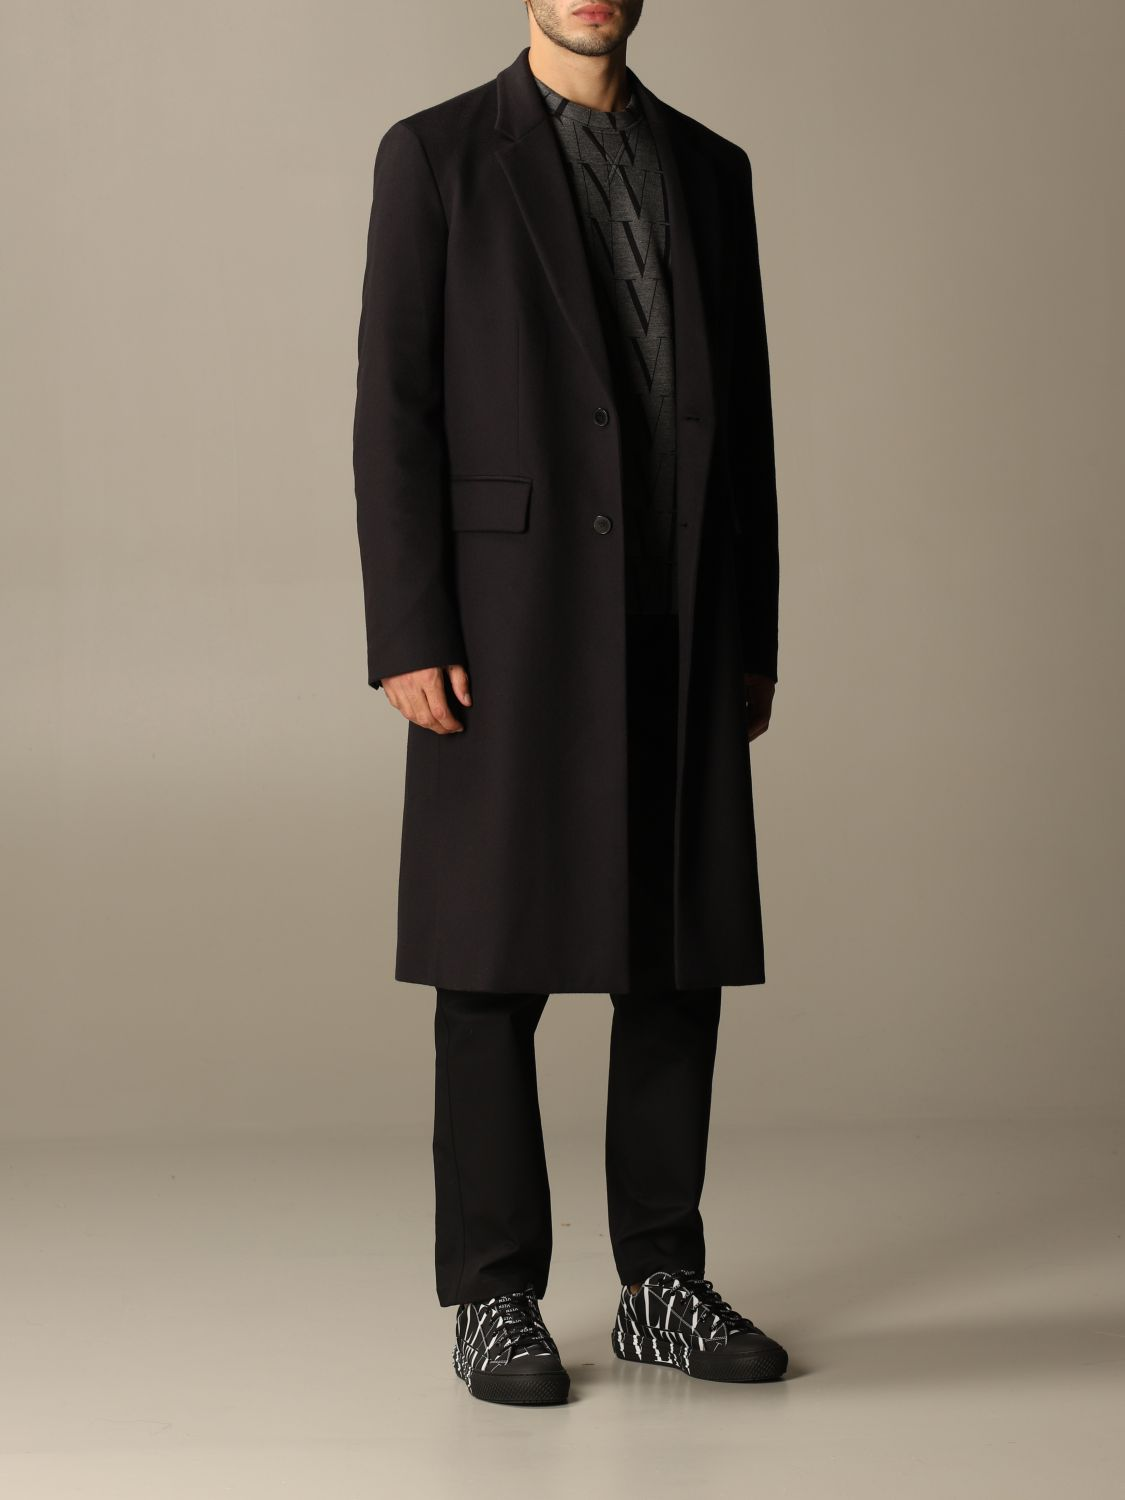 Coat Valentino: Coat men Valentino navy 2